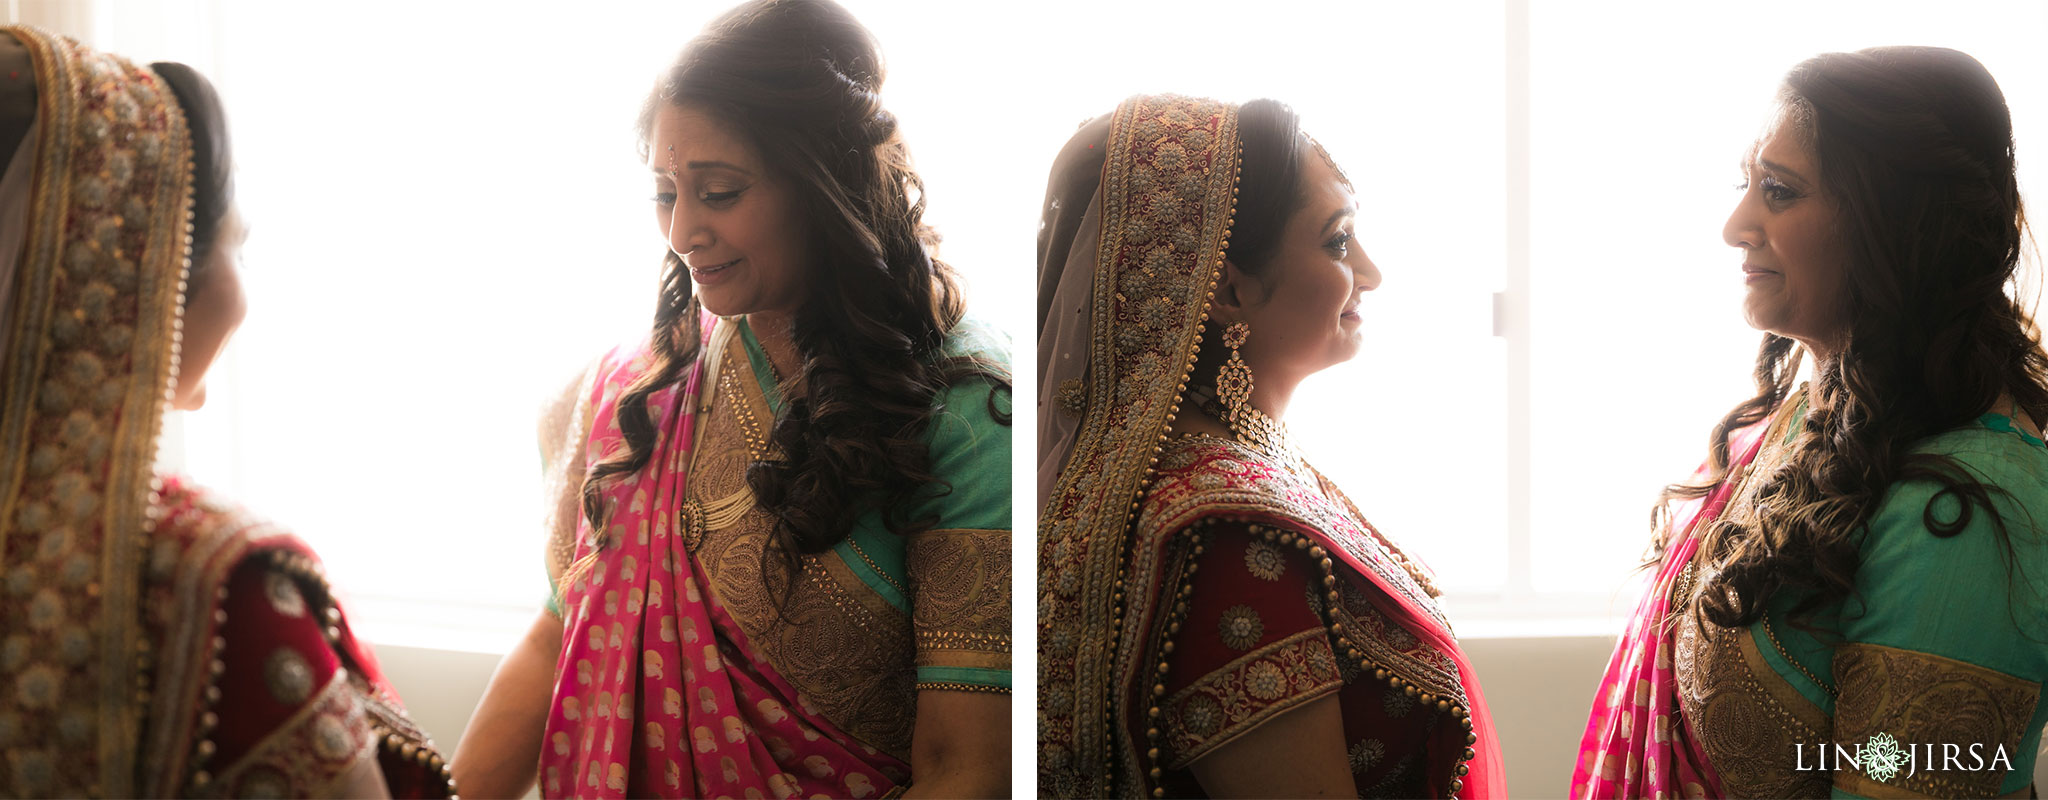 03 loews coronado bay resort indian bride wedding photography